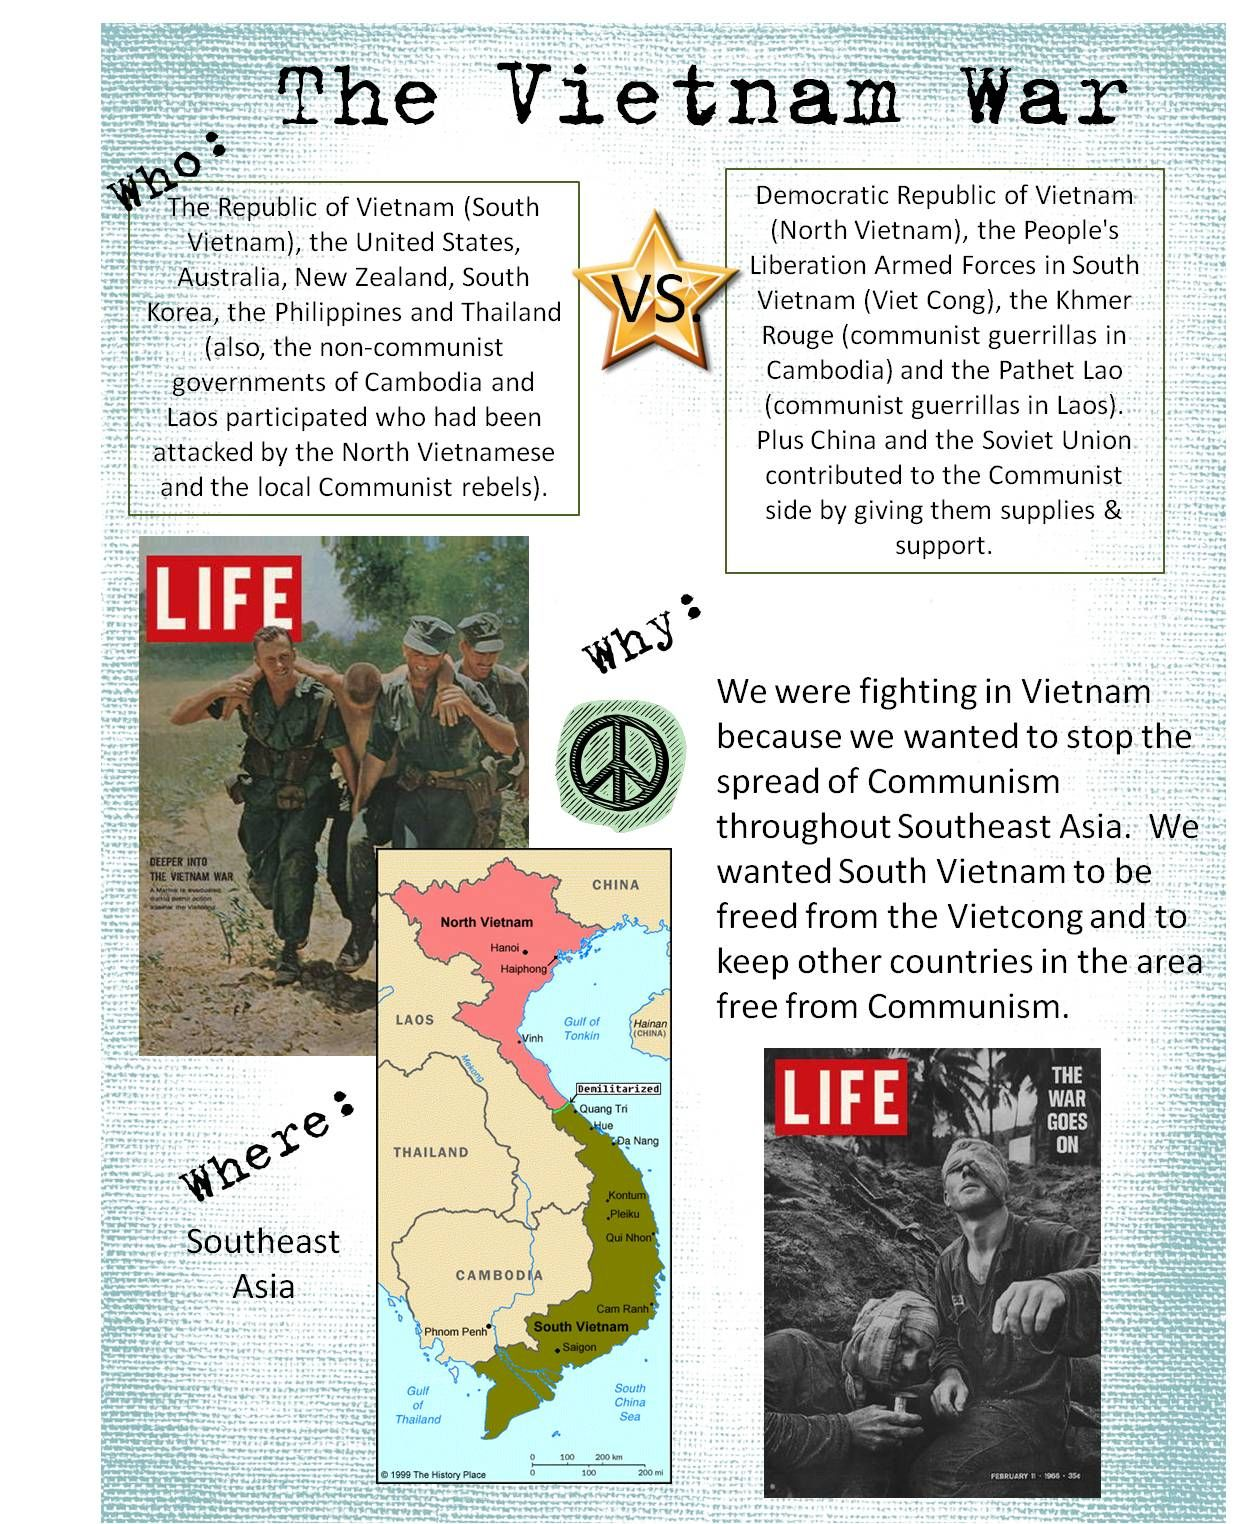 Vietnam War Project for junior high  Education  Pinterest  Vietnam War, Vietnam and Social